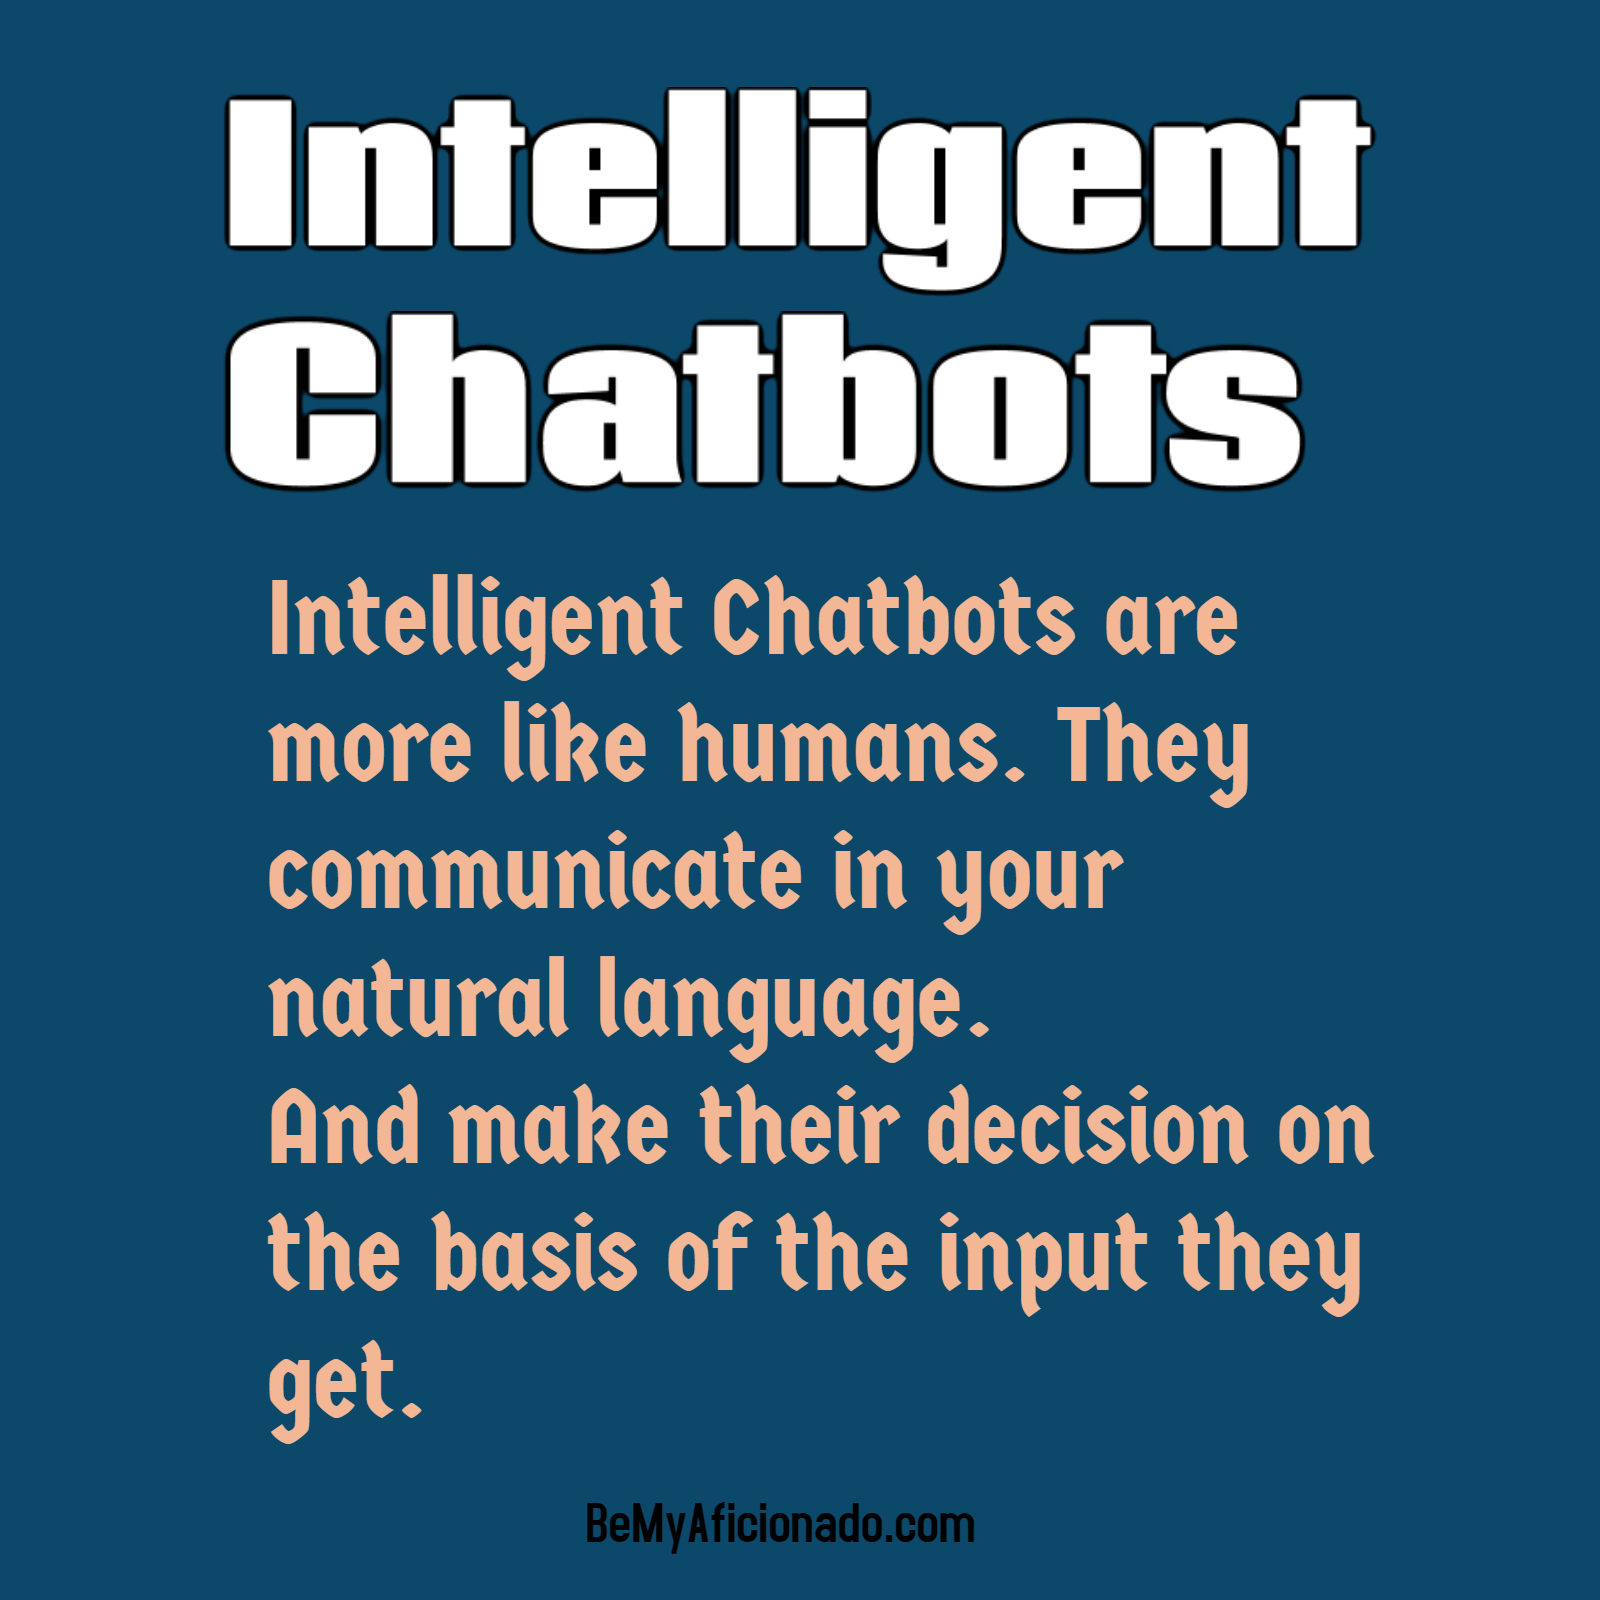 Intelligent Chatbots are more like humans. They communicate in your natural language. And make their decision on the basis of the input they get.